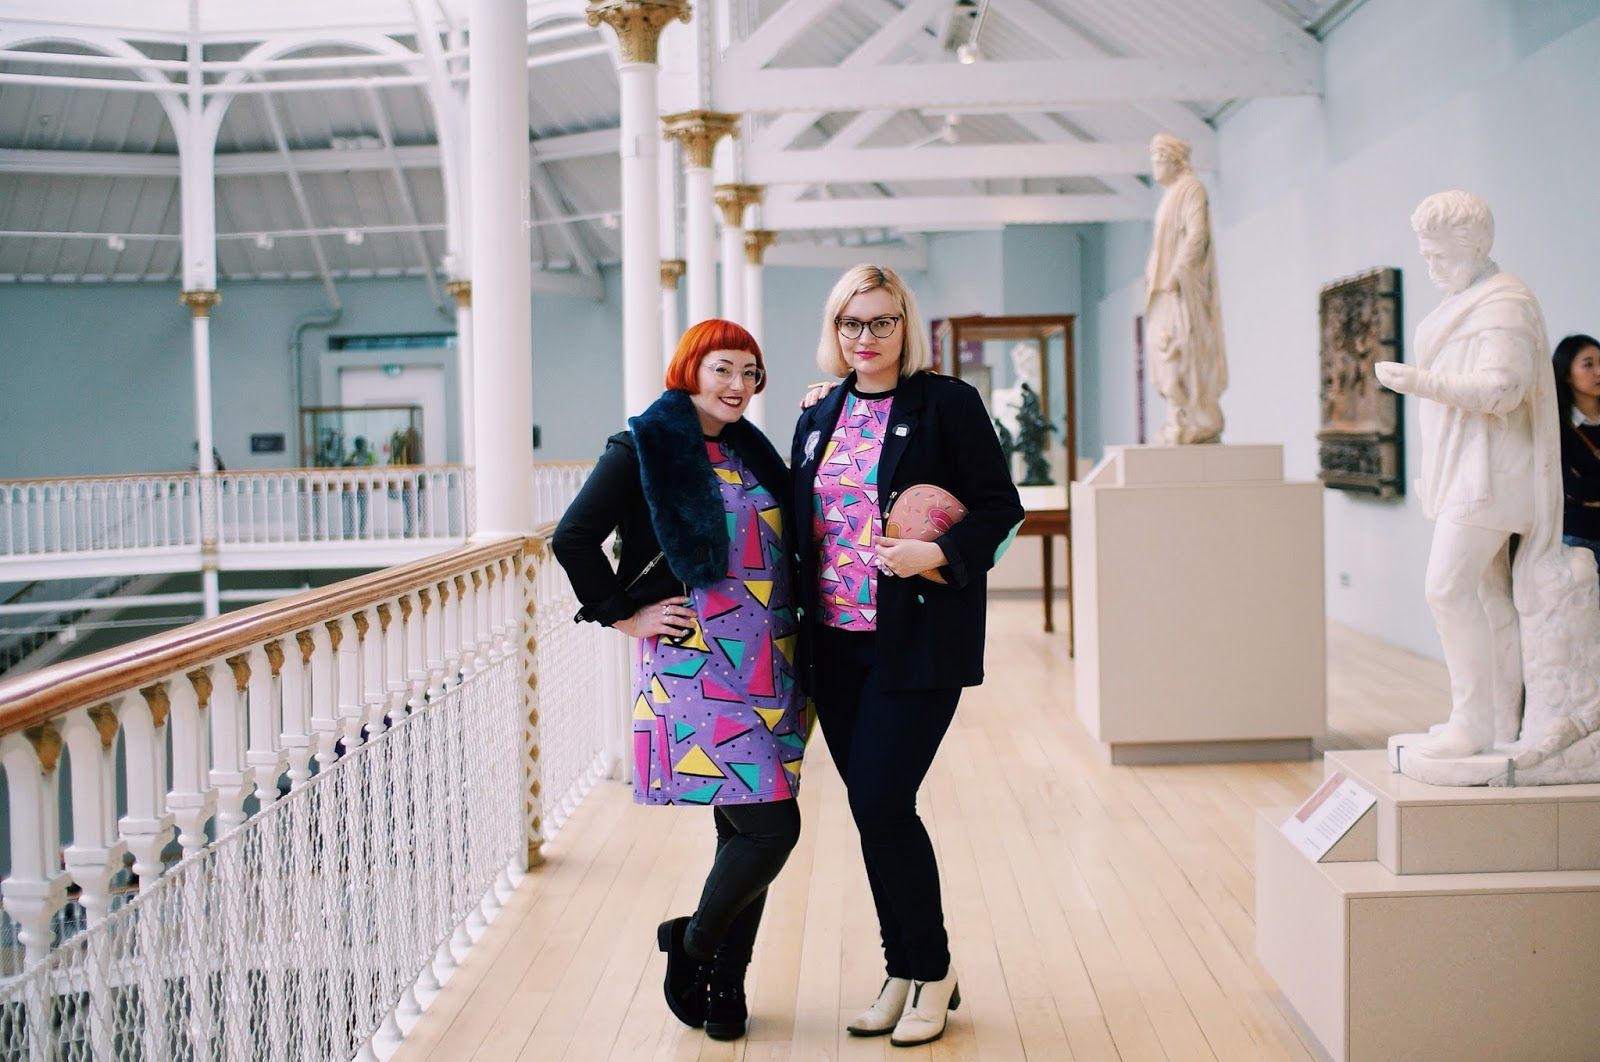 Helen and Kimberley, Wardrobe Conversations, Boya Shen, moveit video project, YouTube, National Museum of Scotland, Edinburgh bloggers, Scottish bloggers,